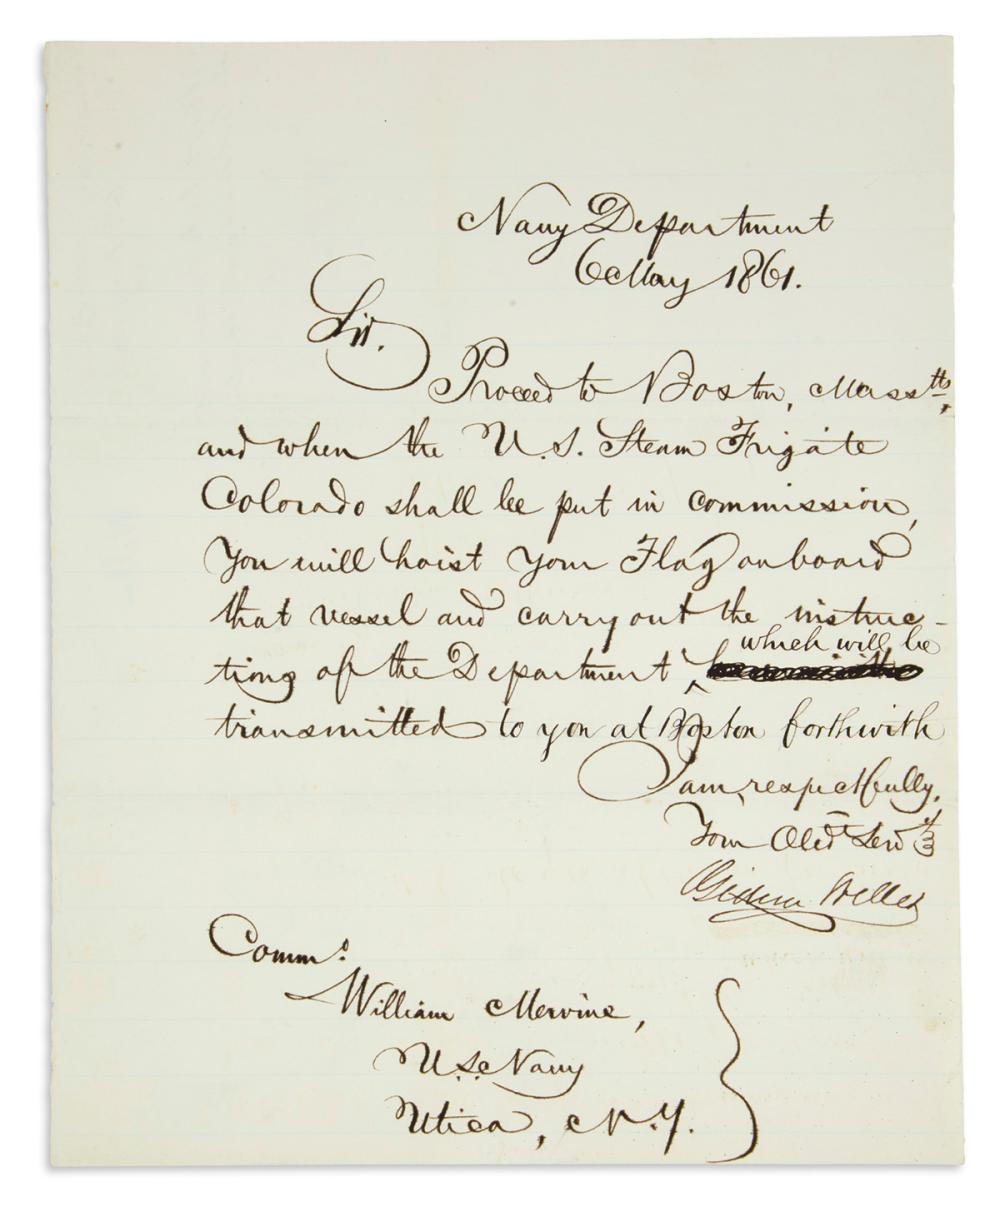 (CIVIL WAR.) WELLES, GIDEON. Letter Signed, as Secretary of the Navy, to Commodore William Mervine,